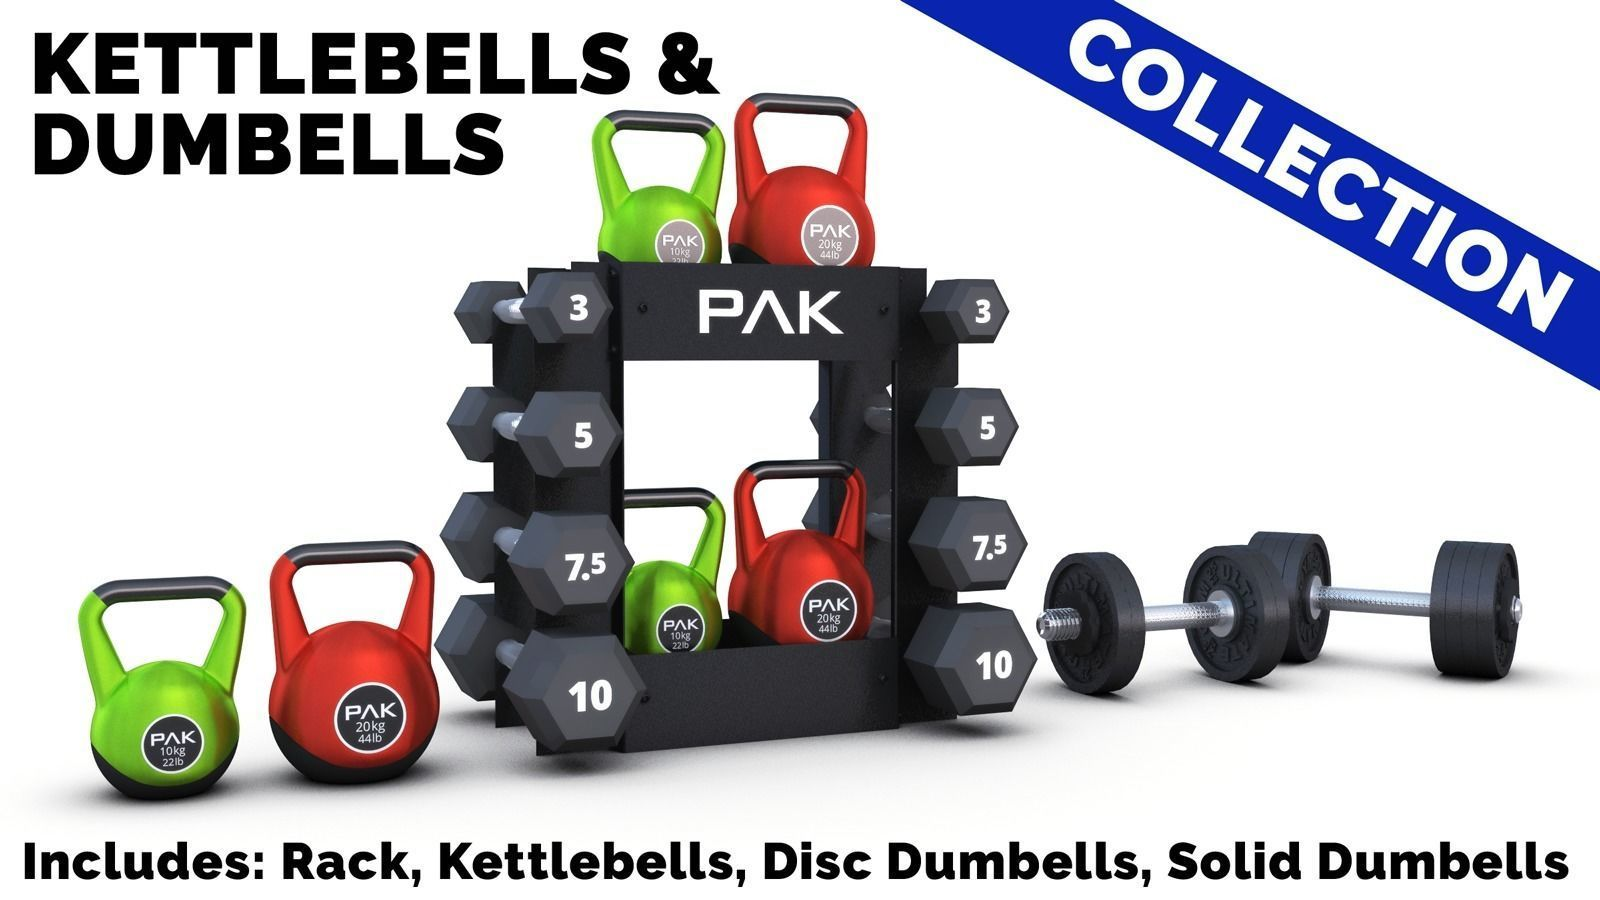 Kettlebells and Dumbbells Collection